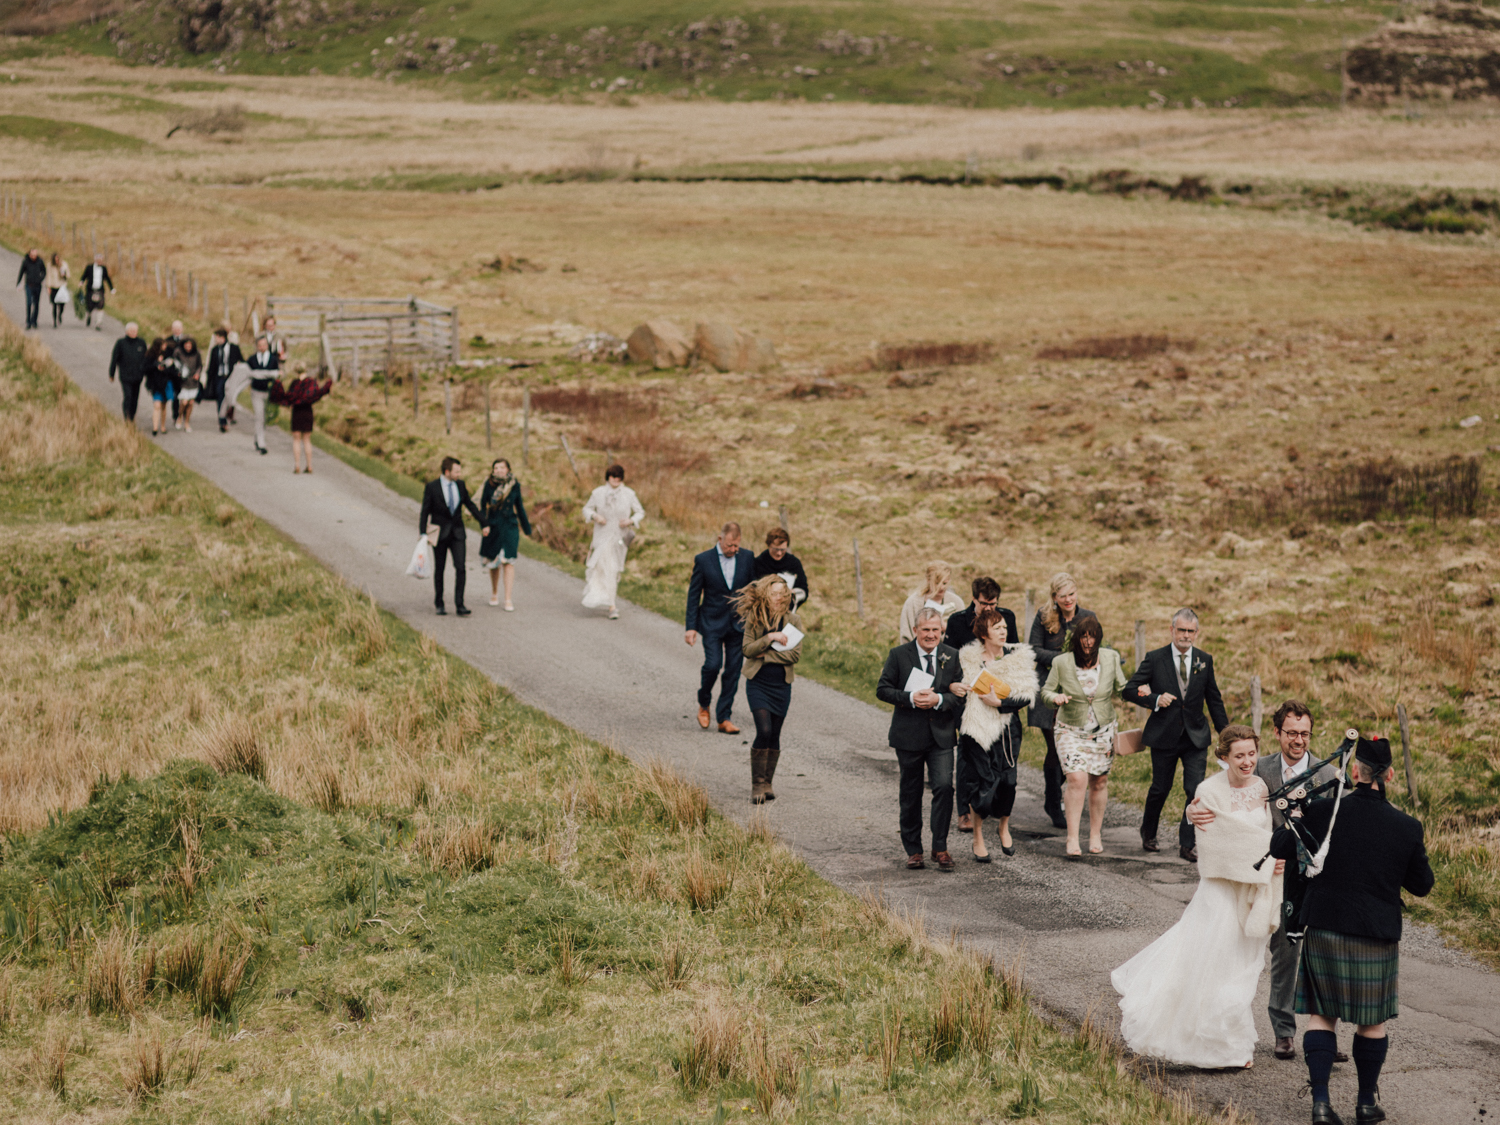 capyture-wedding-photographer-destination-nature-intimate-wedding-isle-of-skye-scotland-480